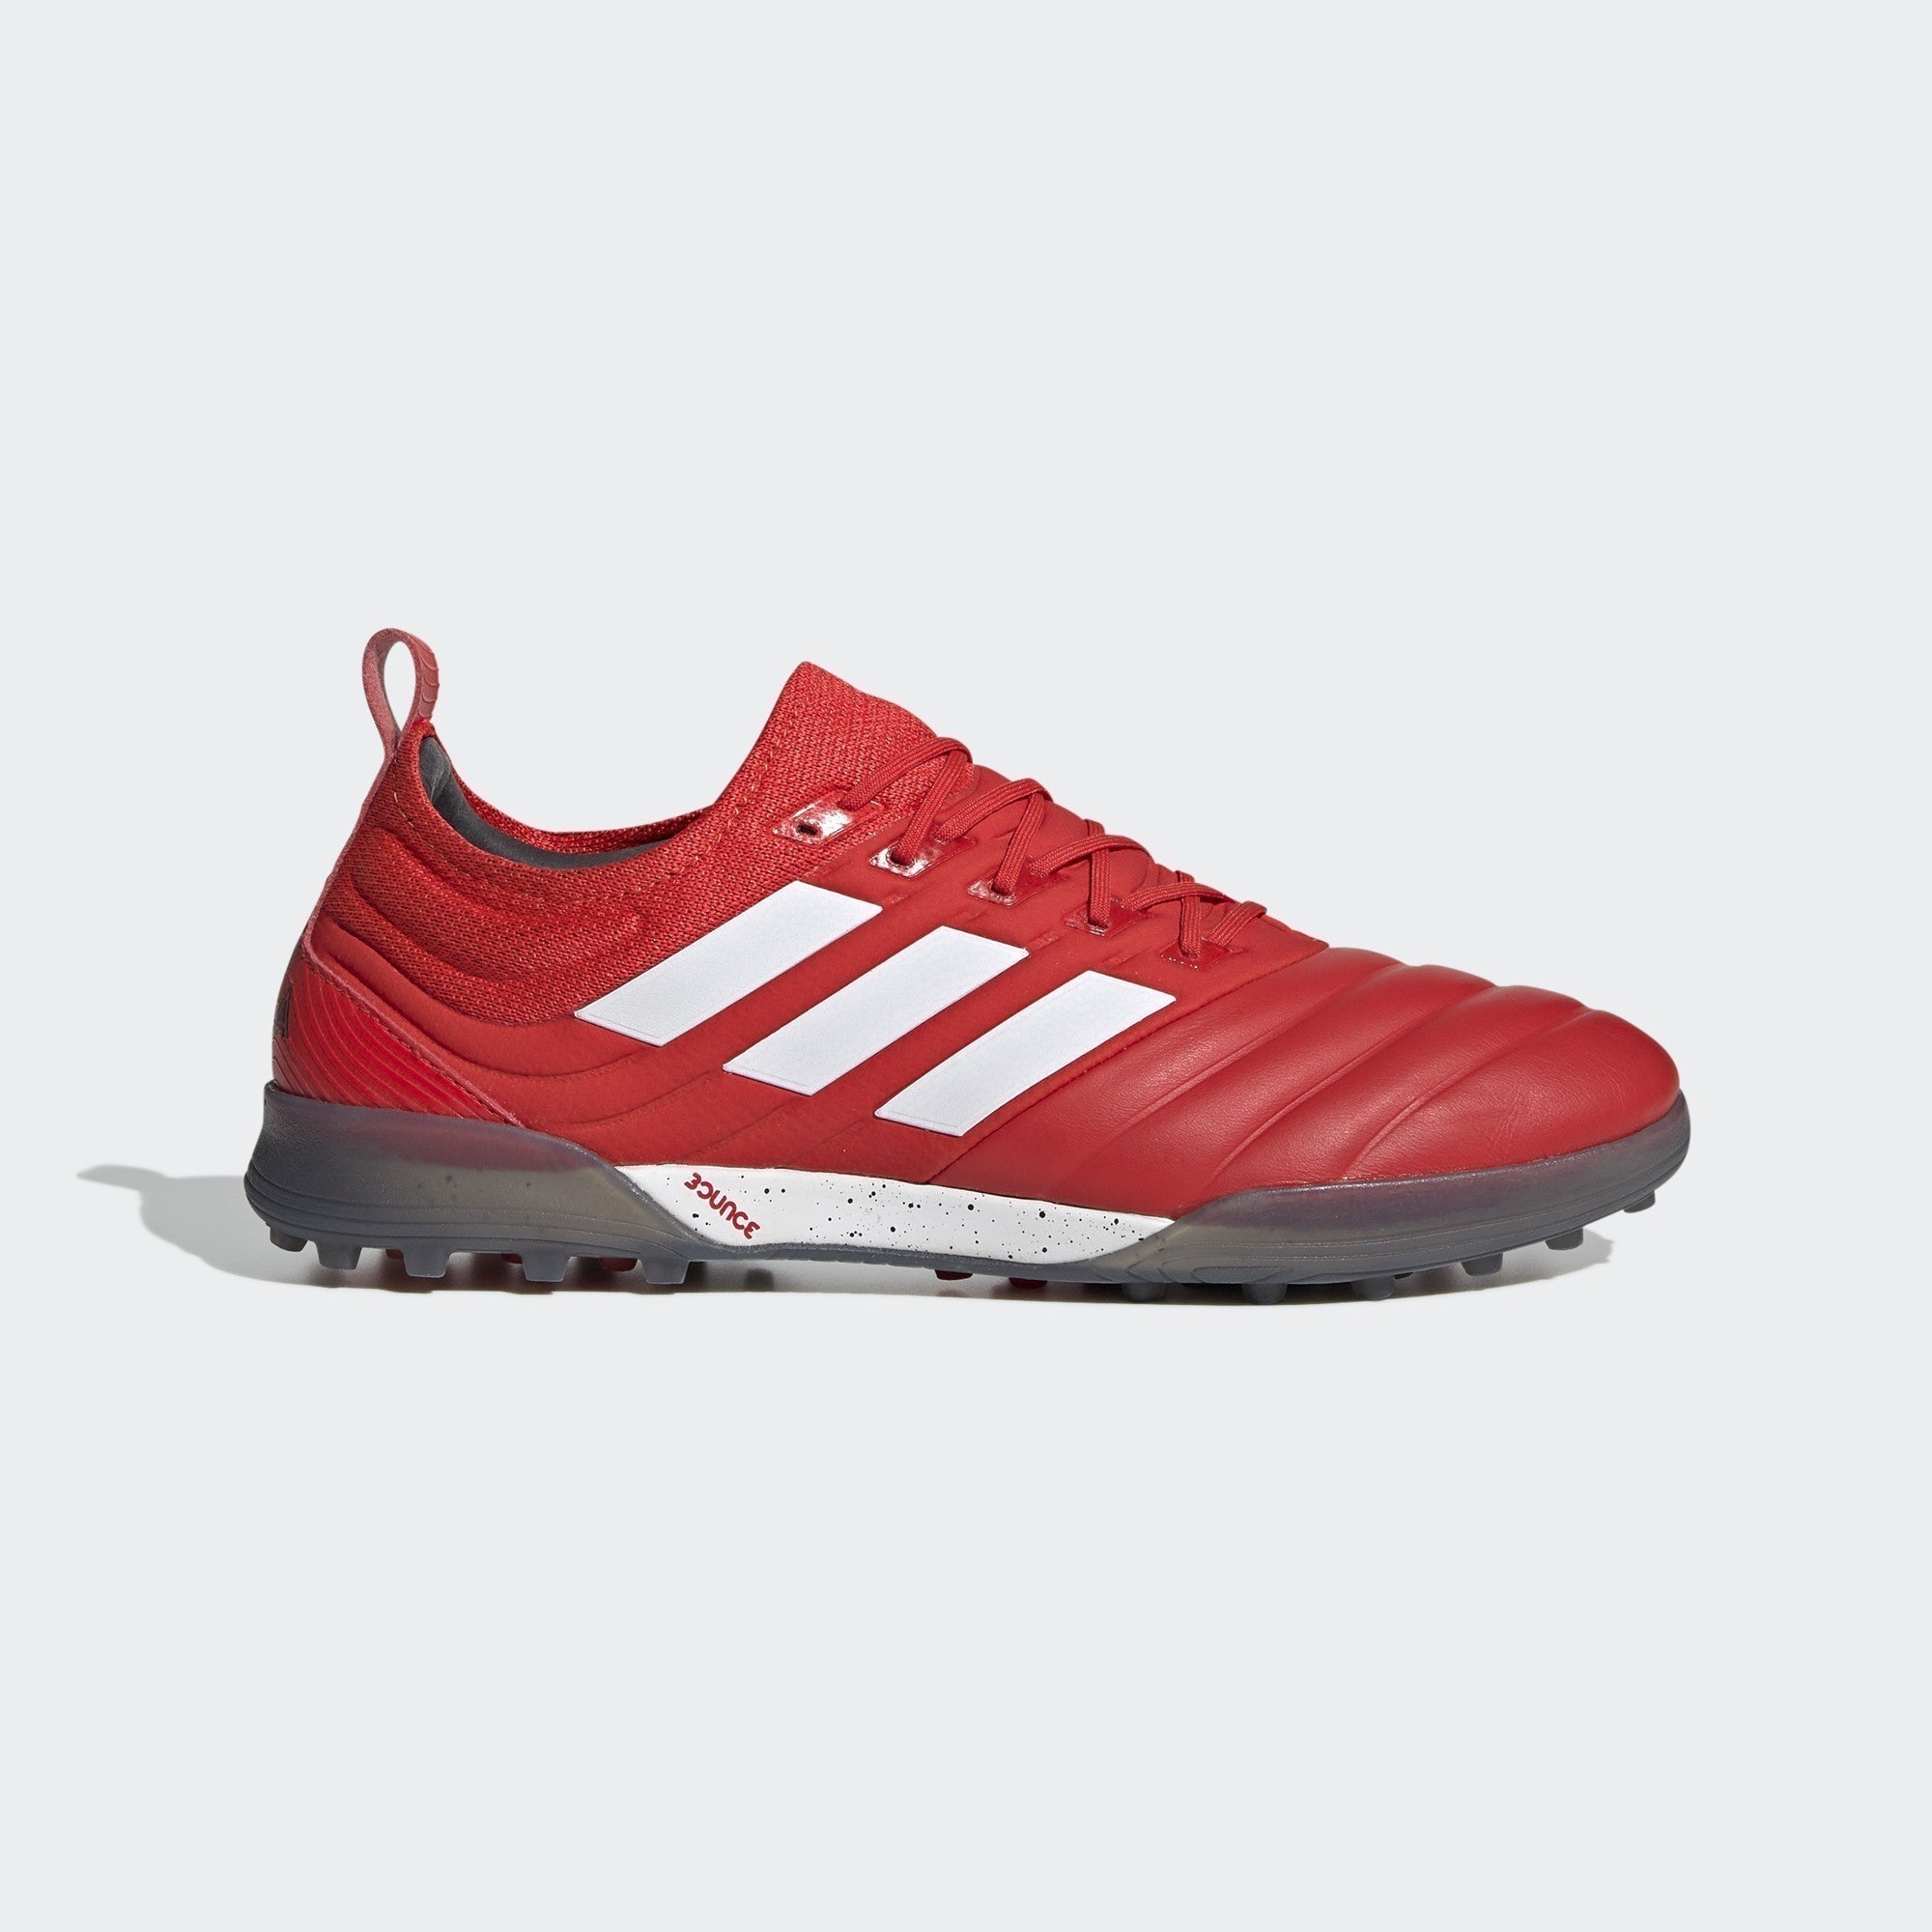 COPA 20.1 Turf Soccer Shoes Red